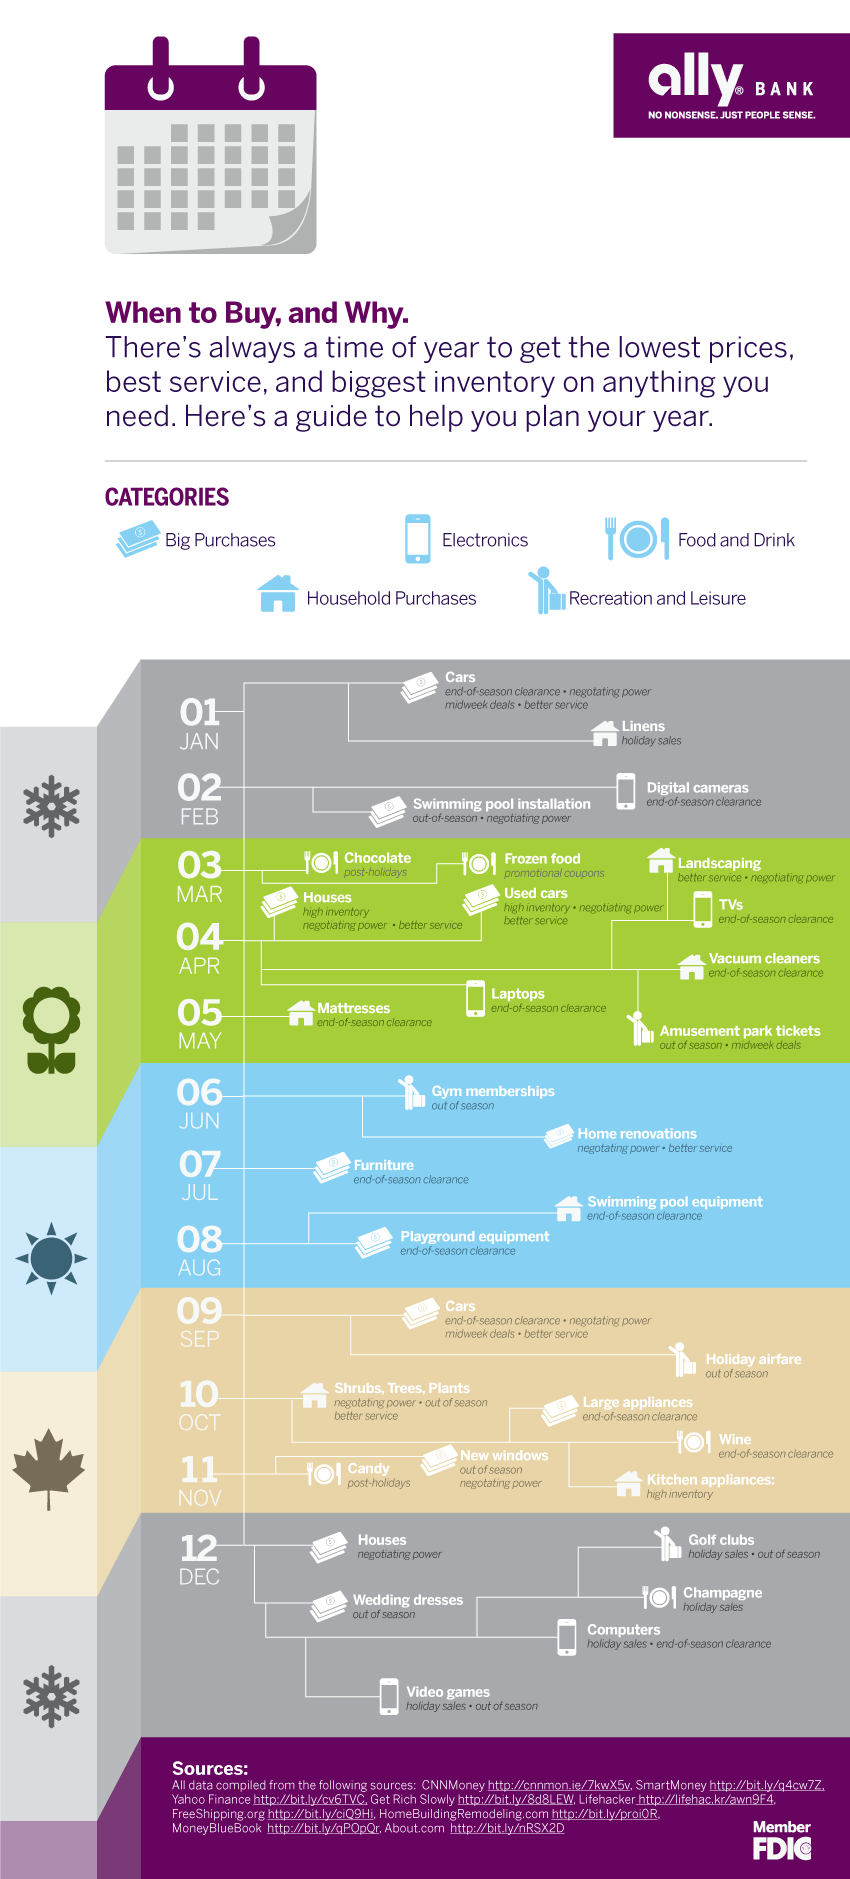 ally-bank-best-time-to-buy-infographic1